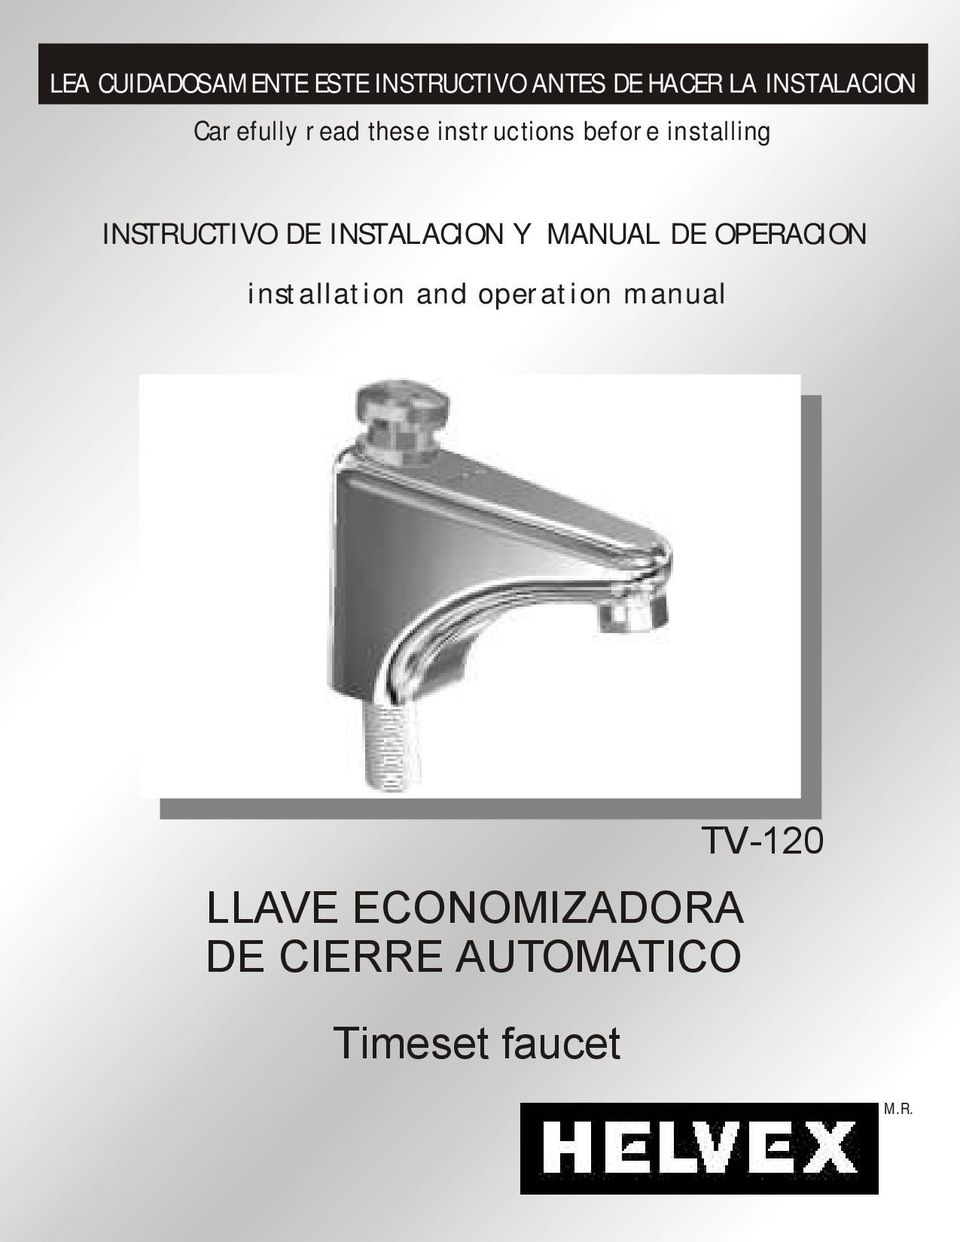 INSTALACION Y MANUAL DE OPERACION installation and operation